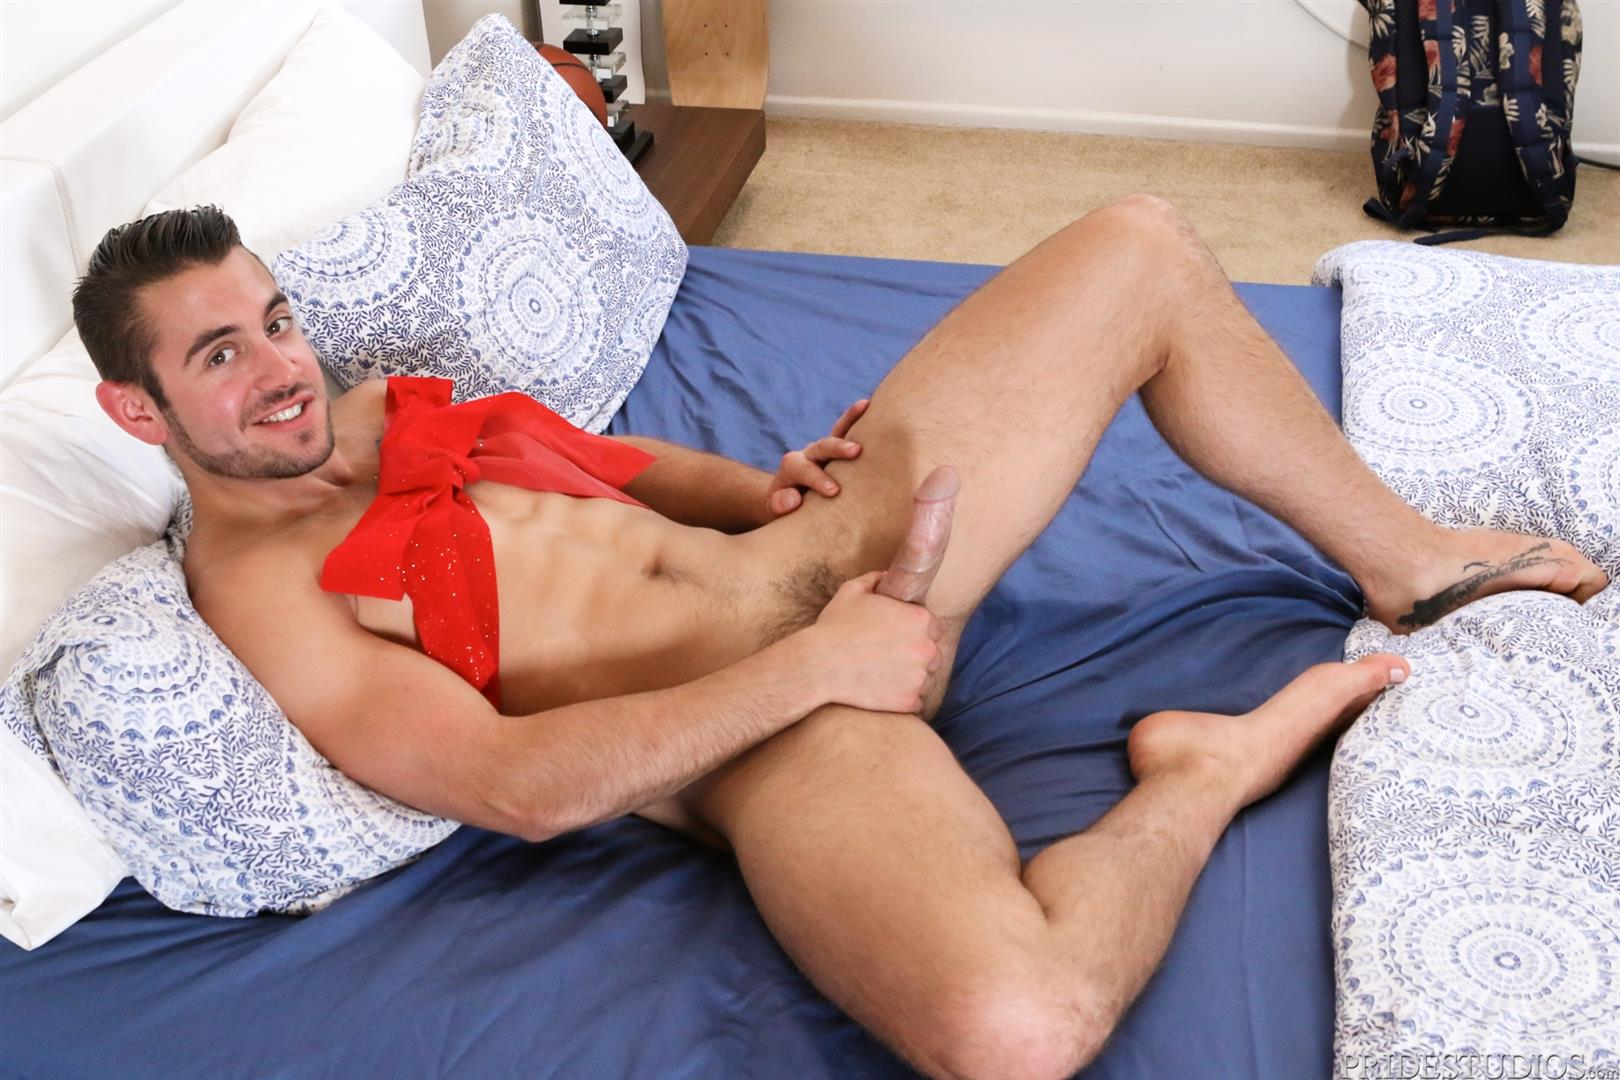 Dylan-Lucas-Dante-Colle-and-Peter-Rough-Hairy-Daddy-Getting-Fucked-04 Hairy Daddy Gets Fucked By Dante Colle For His Birthday